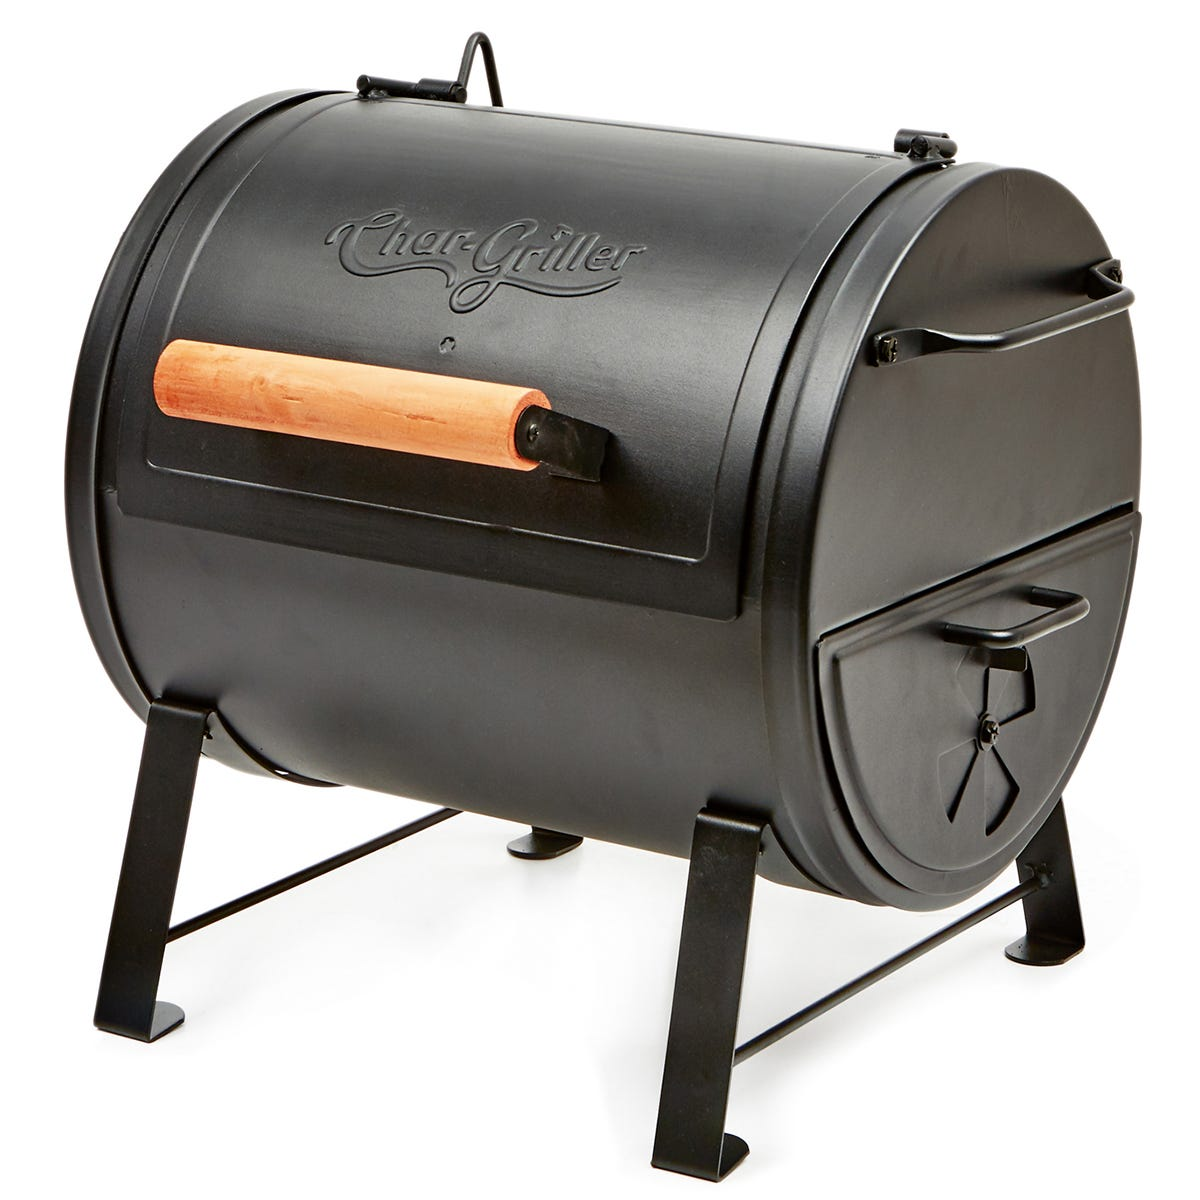 Char-Griller Table Top Grill and Side Fire Box